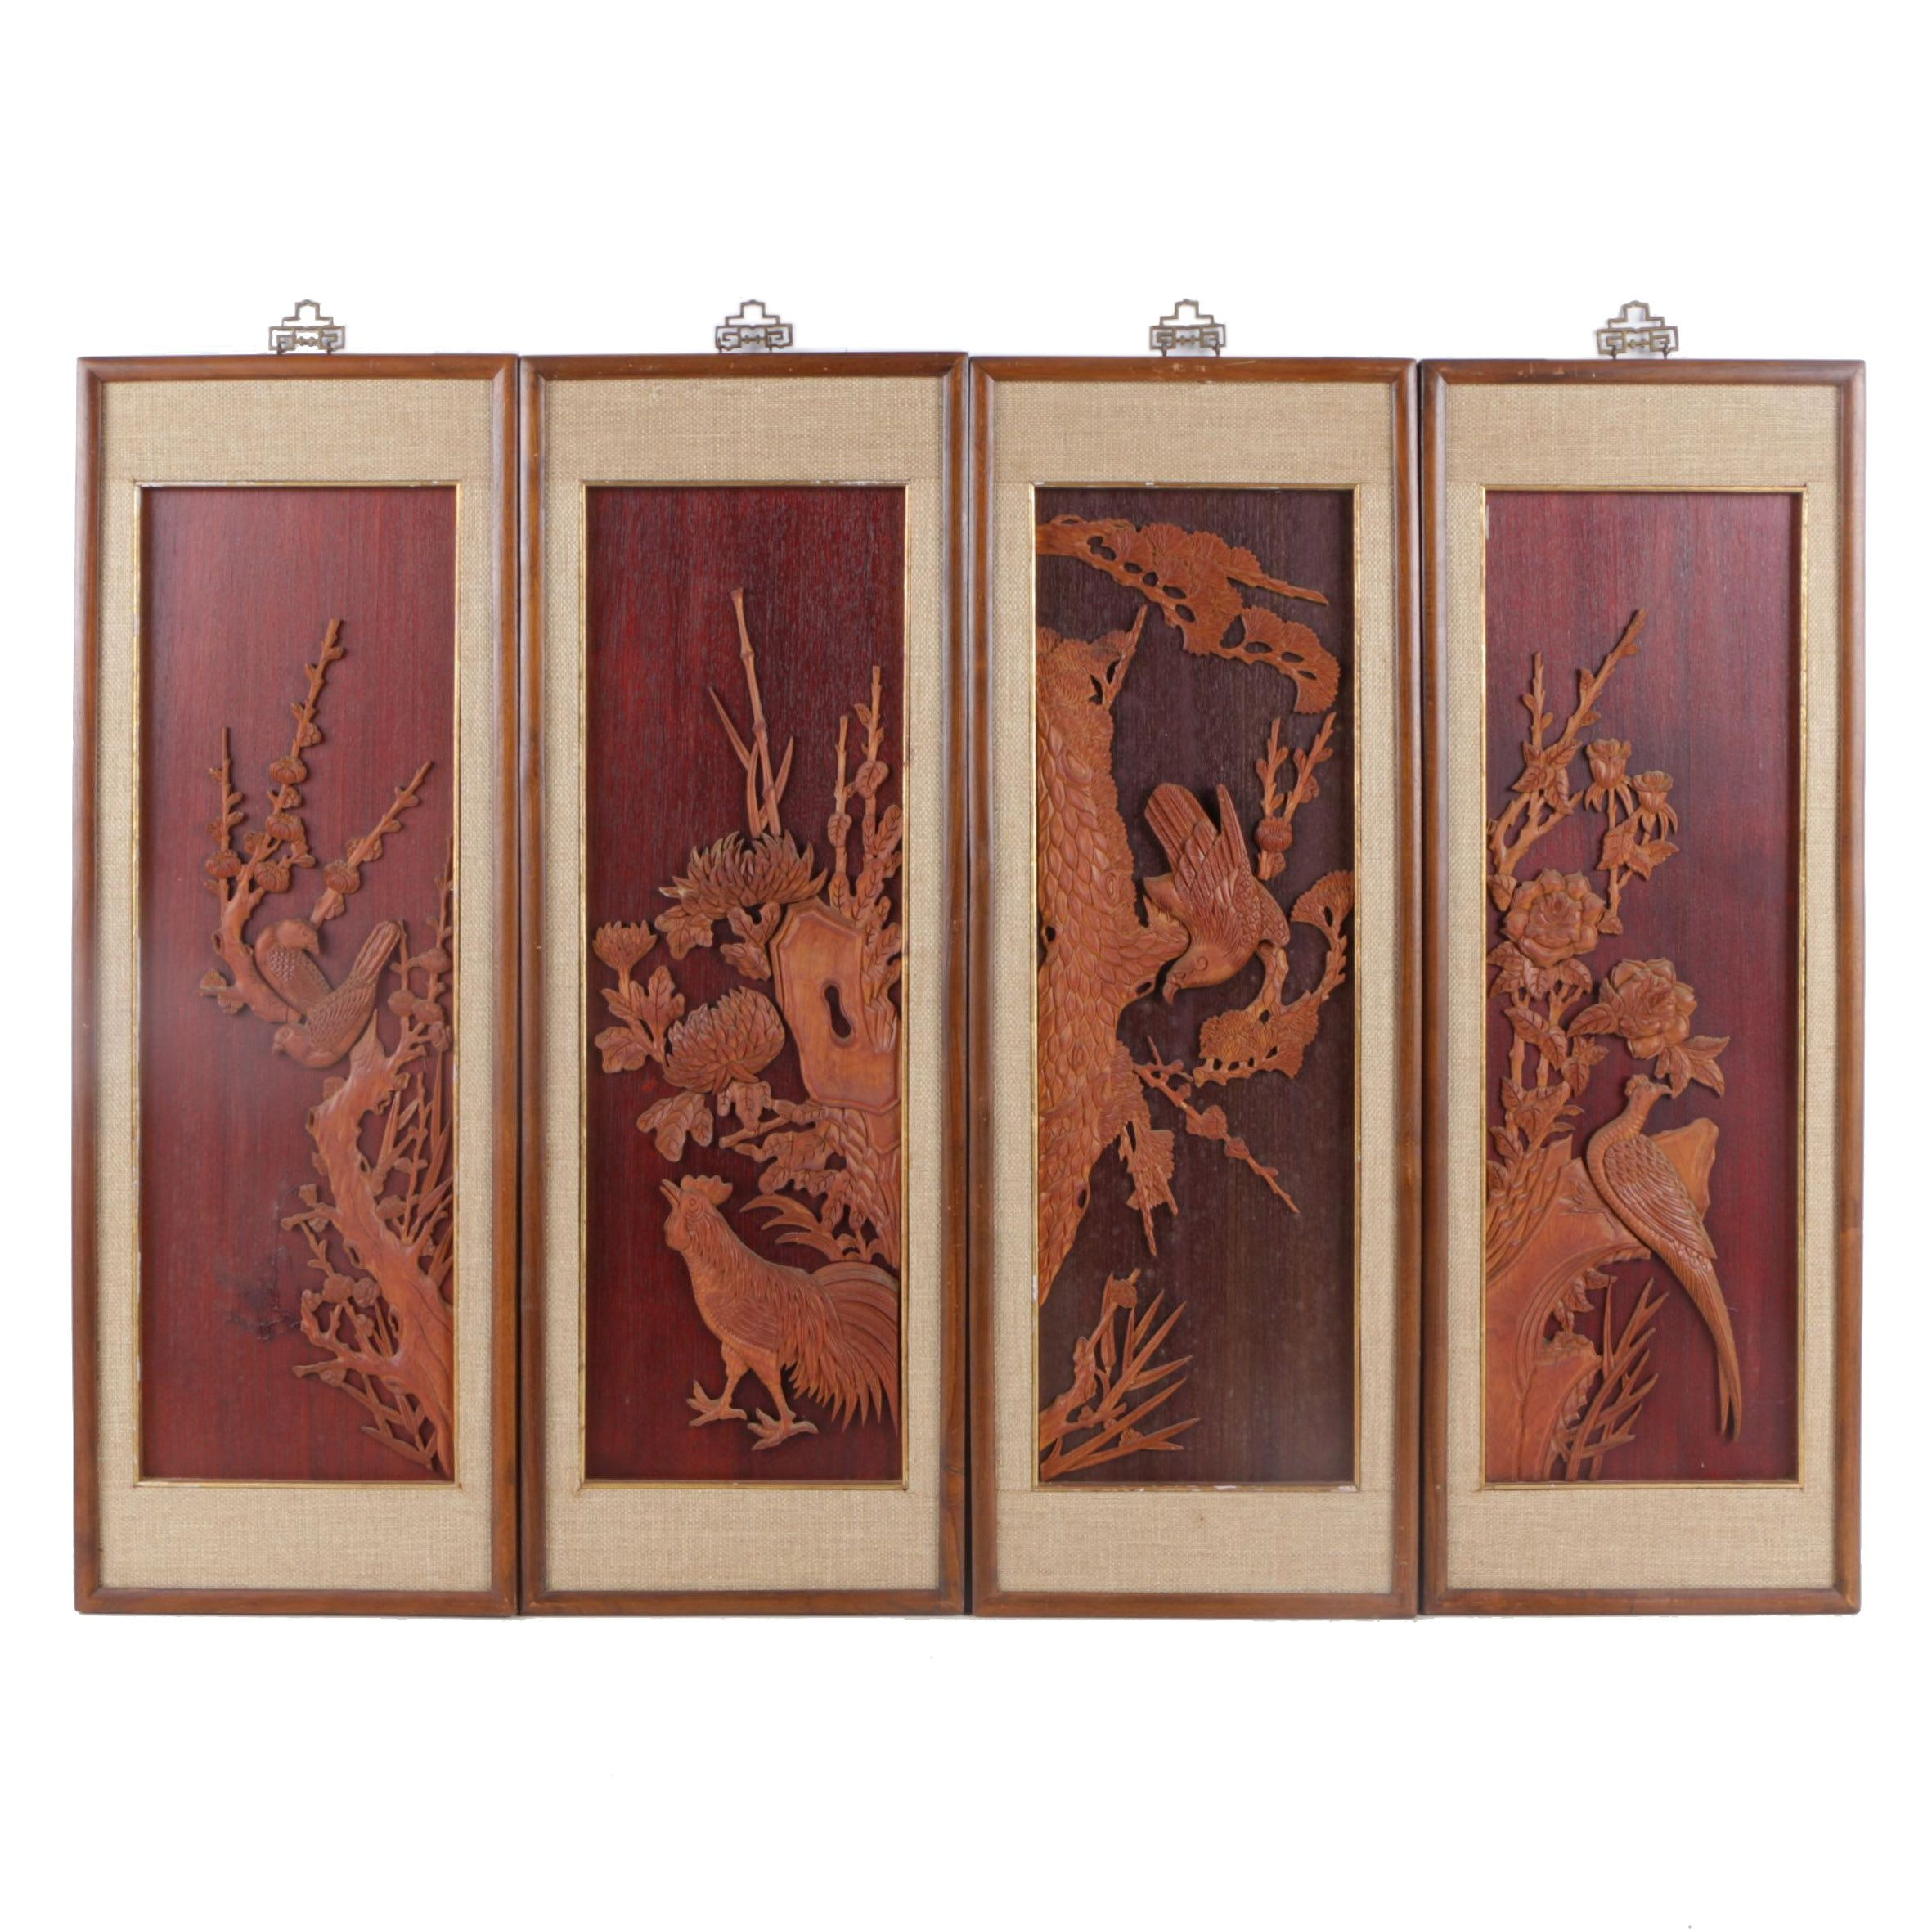 Four Chinese Hand-Carved Wood Panels of Birds